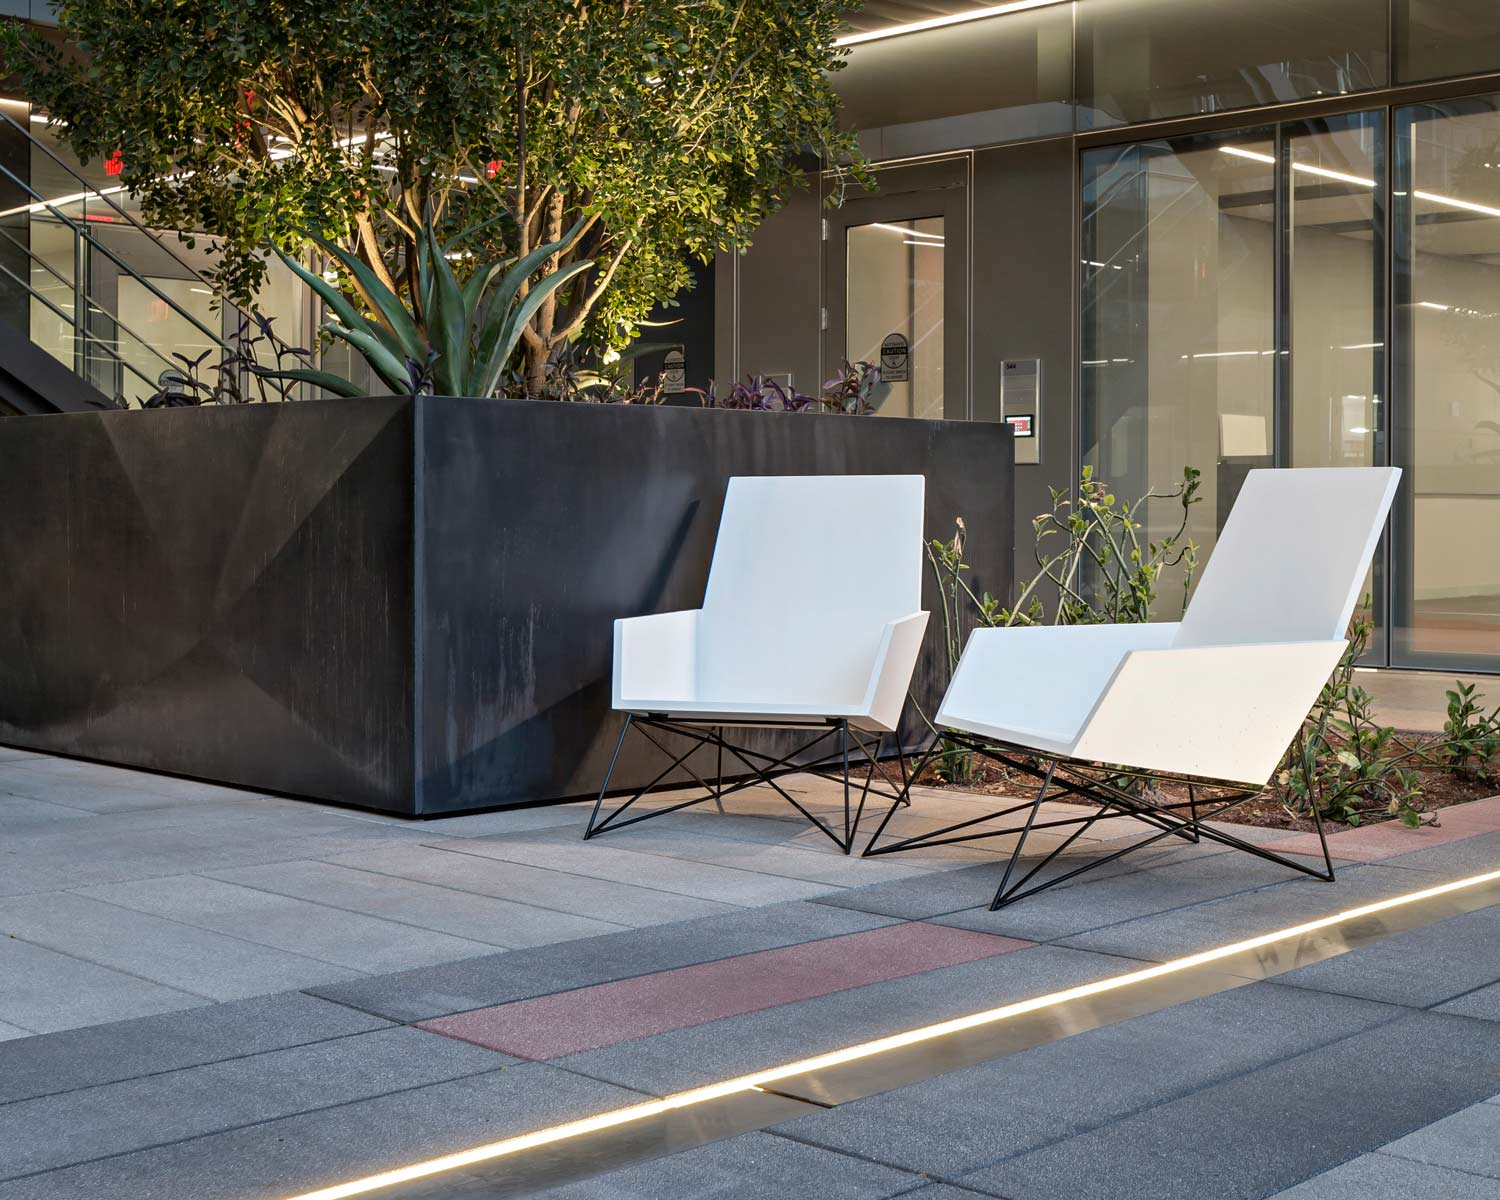 2 modern white outdoor concrete chairs next to black faceted GFRC wall cladding panels